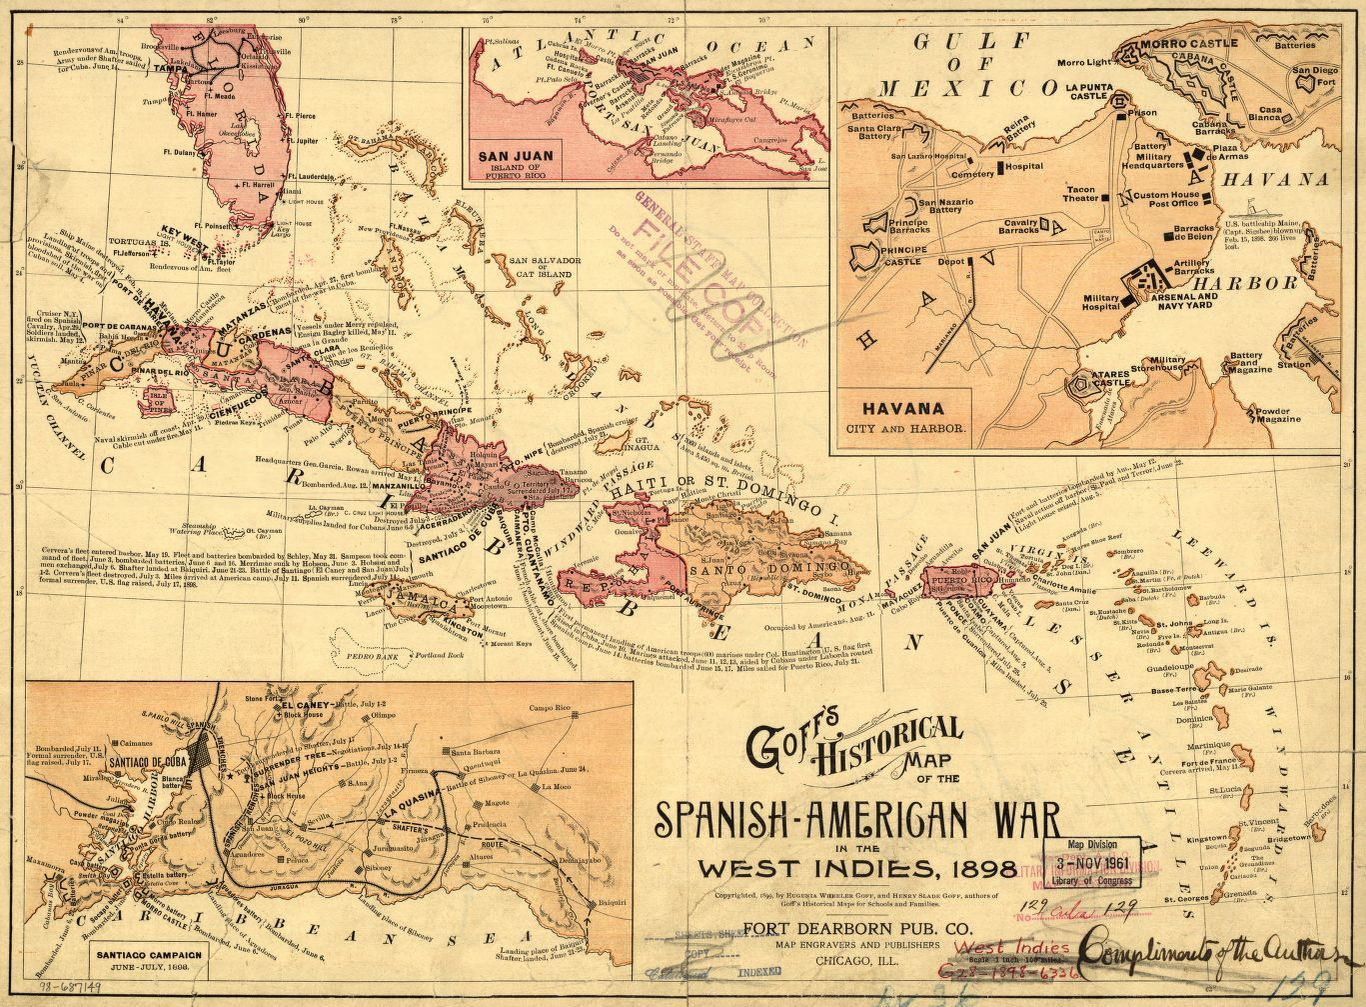 Goff S Historical Map Of The Spanish American War In The